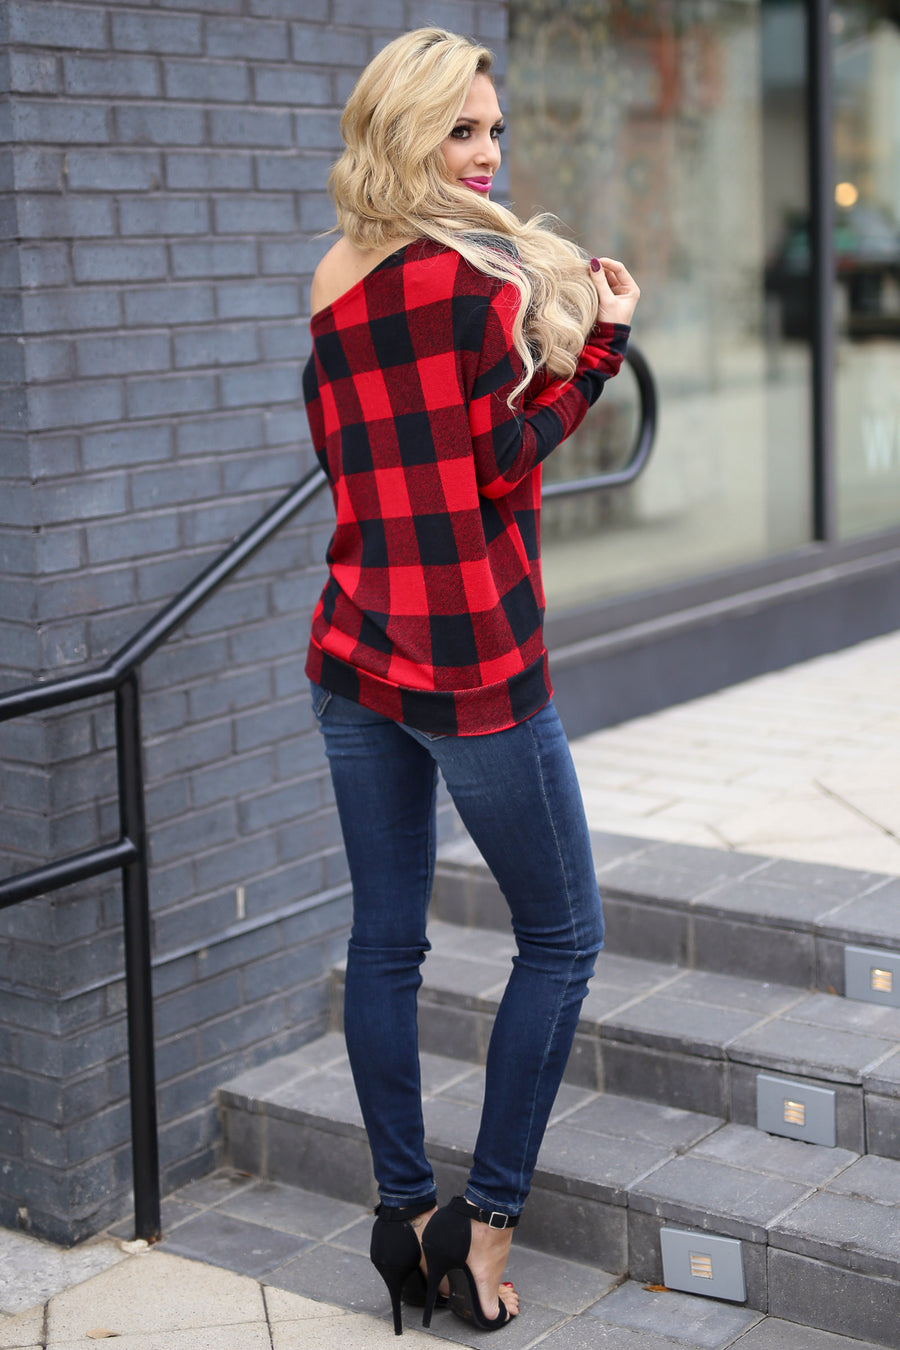 Feel The Magic Top - Black/Red plaid off the shoulder top, outfit, Closet Candy Boutique